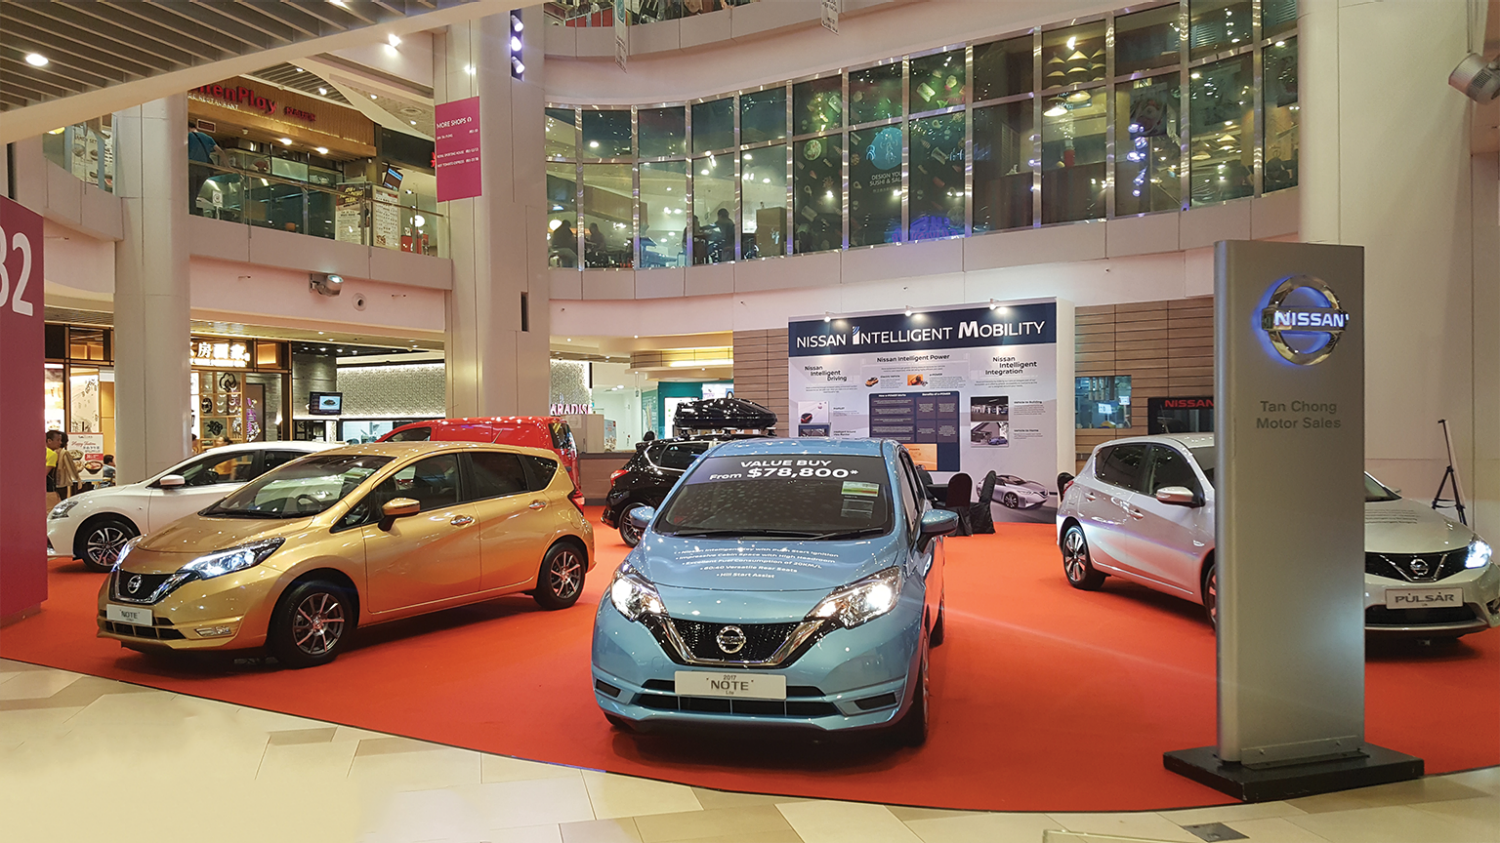 Nissan Intelligent Mobility and Nissan vehicles at Bedok Mall B2 Atrium